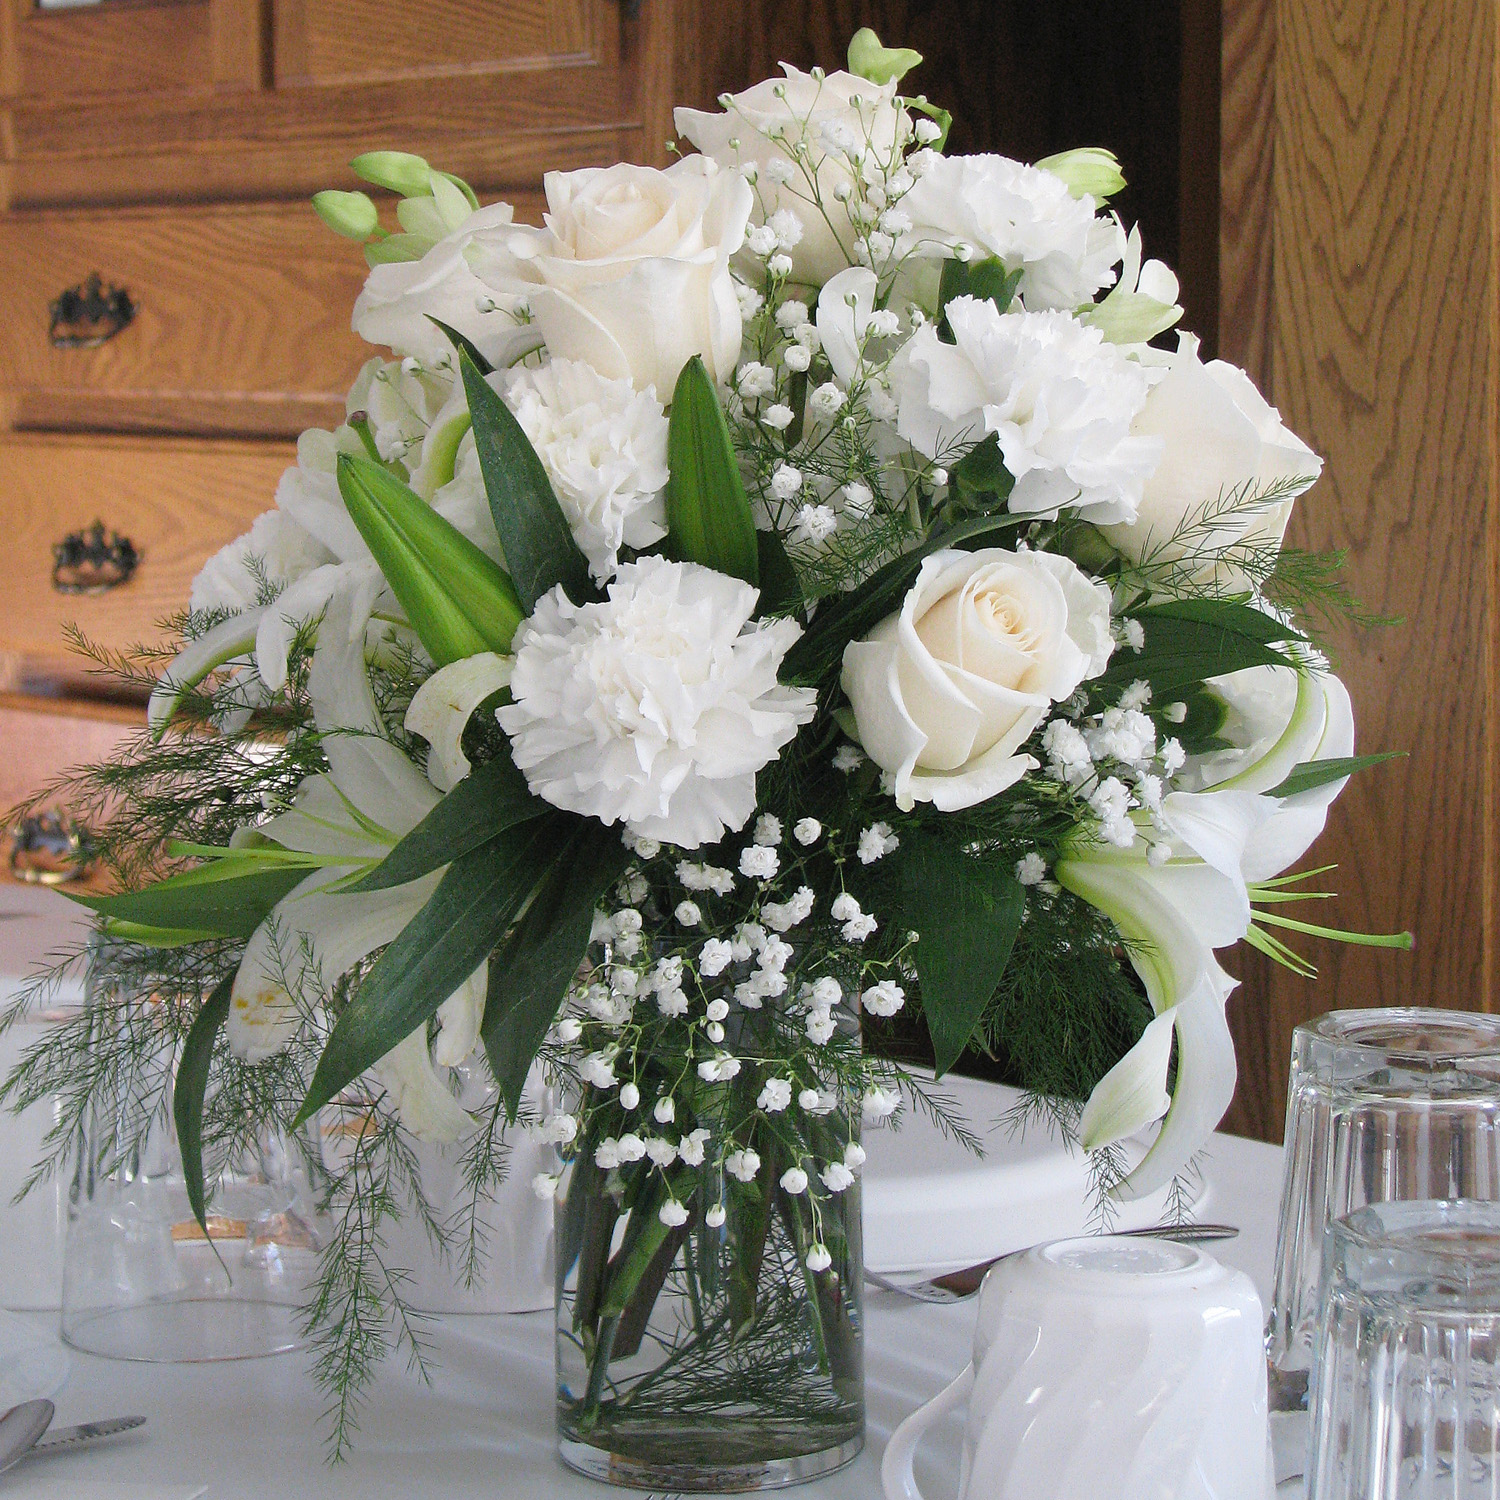 Amish Wedding Flowers 4-Middlefield Ohio-Flowers by Emily.JPG.JPG